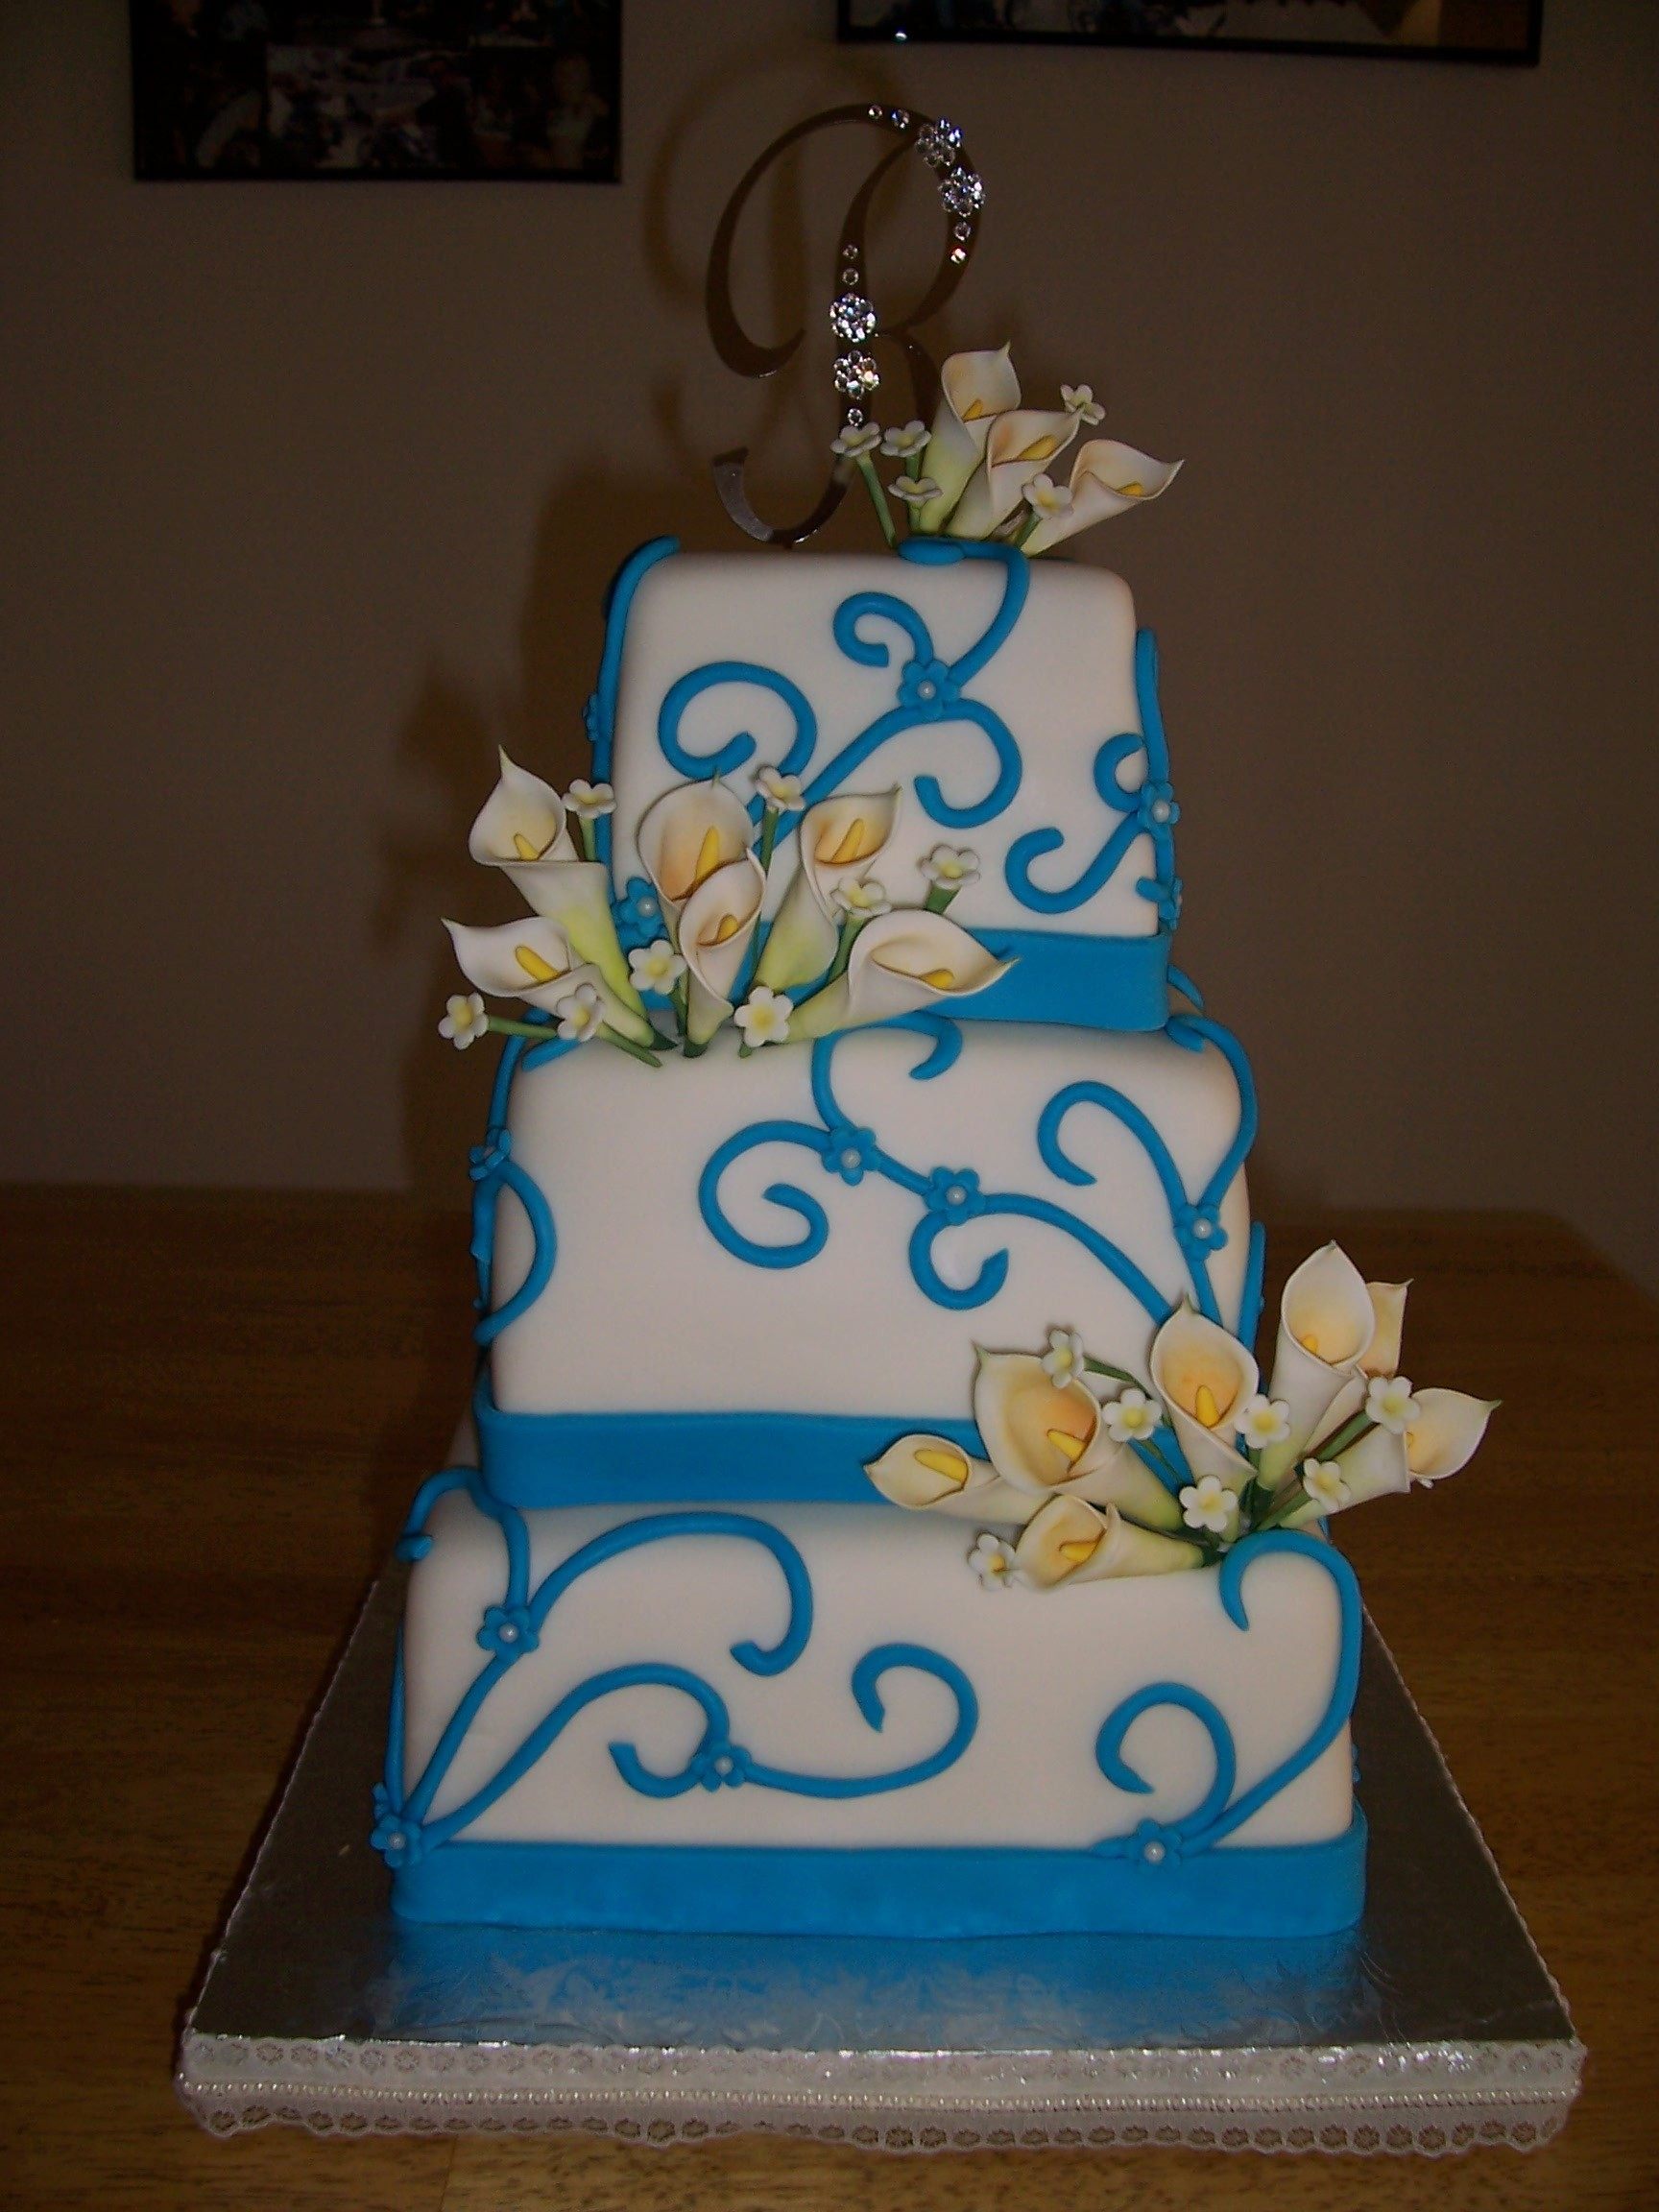 Cakes, blue, cake, Square Wedding Cakes, Square, Fondant, Tiffany, Callas, Sandras cakes, Swirls, Tiers